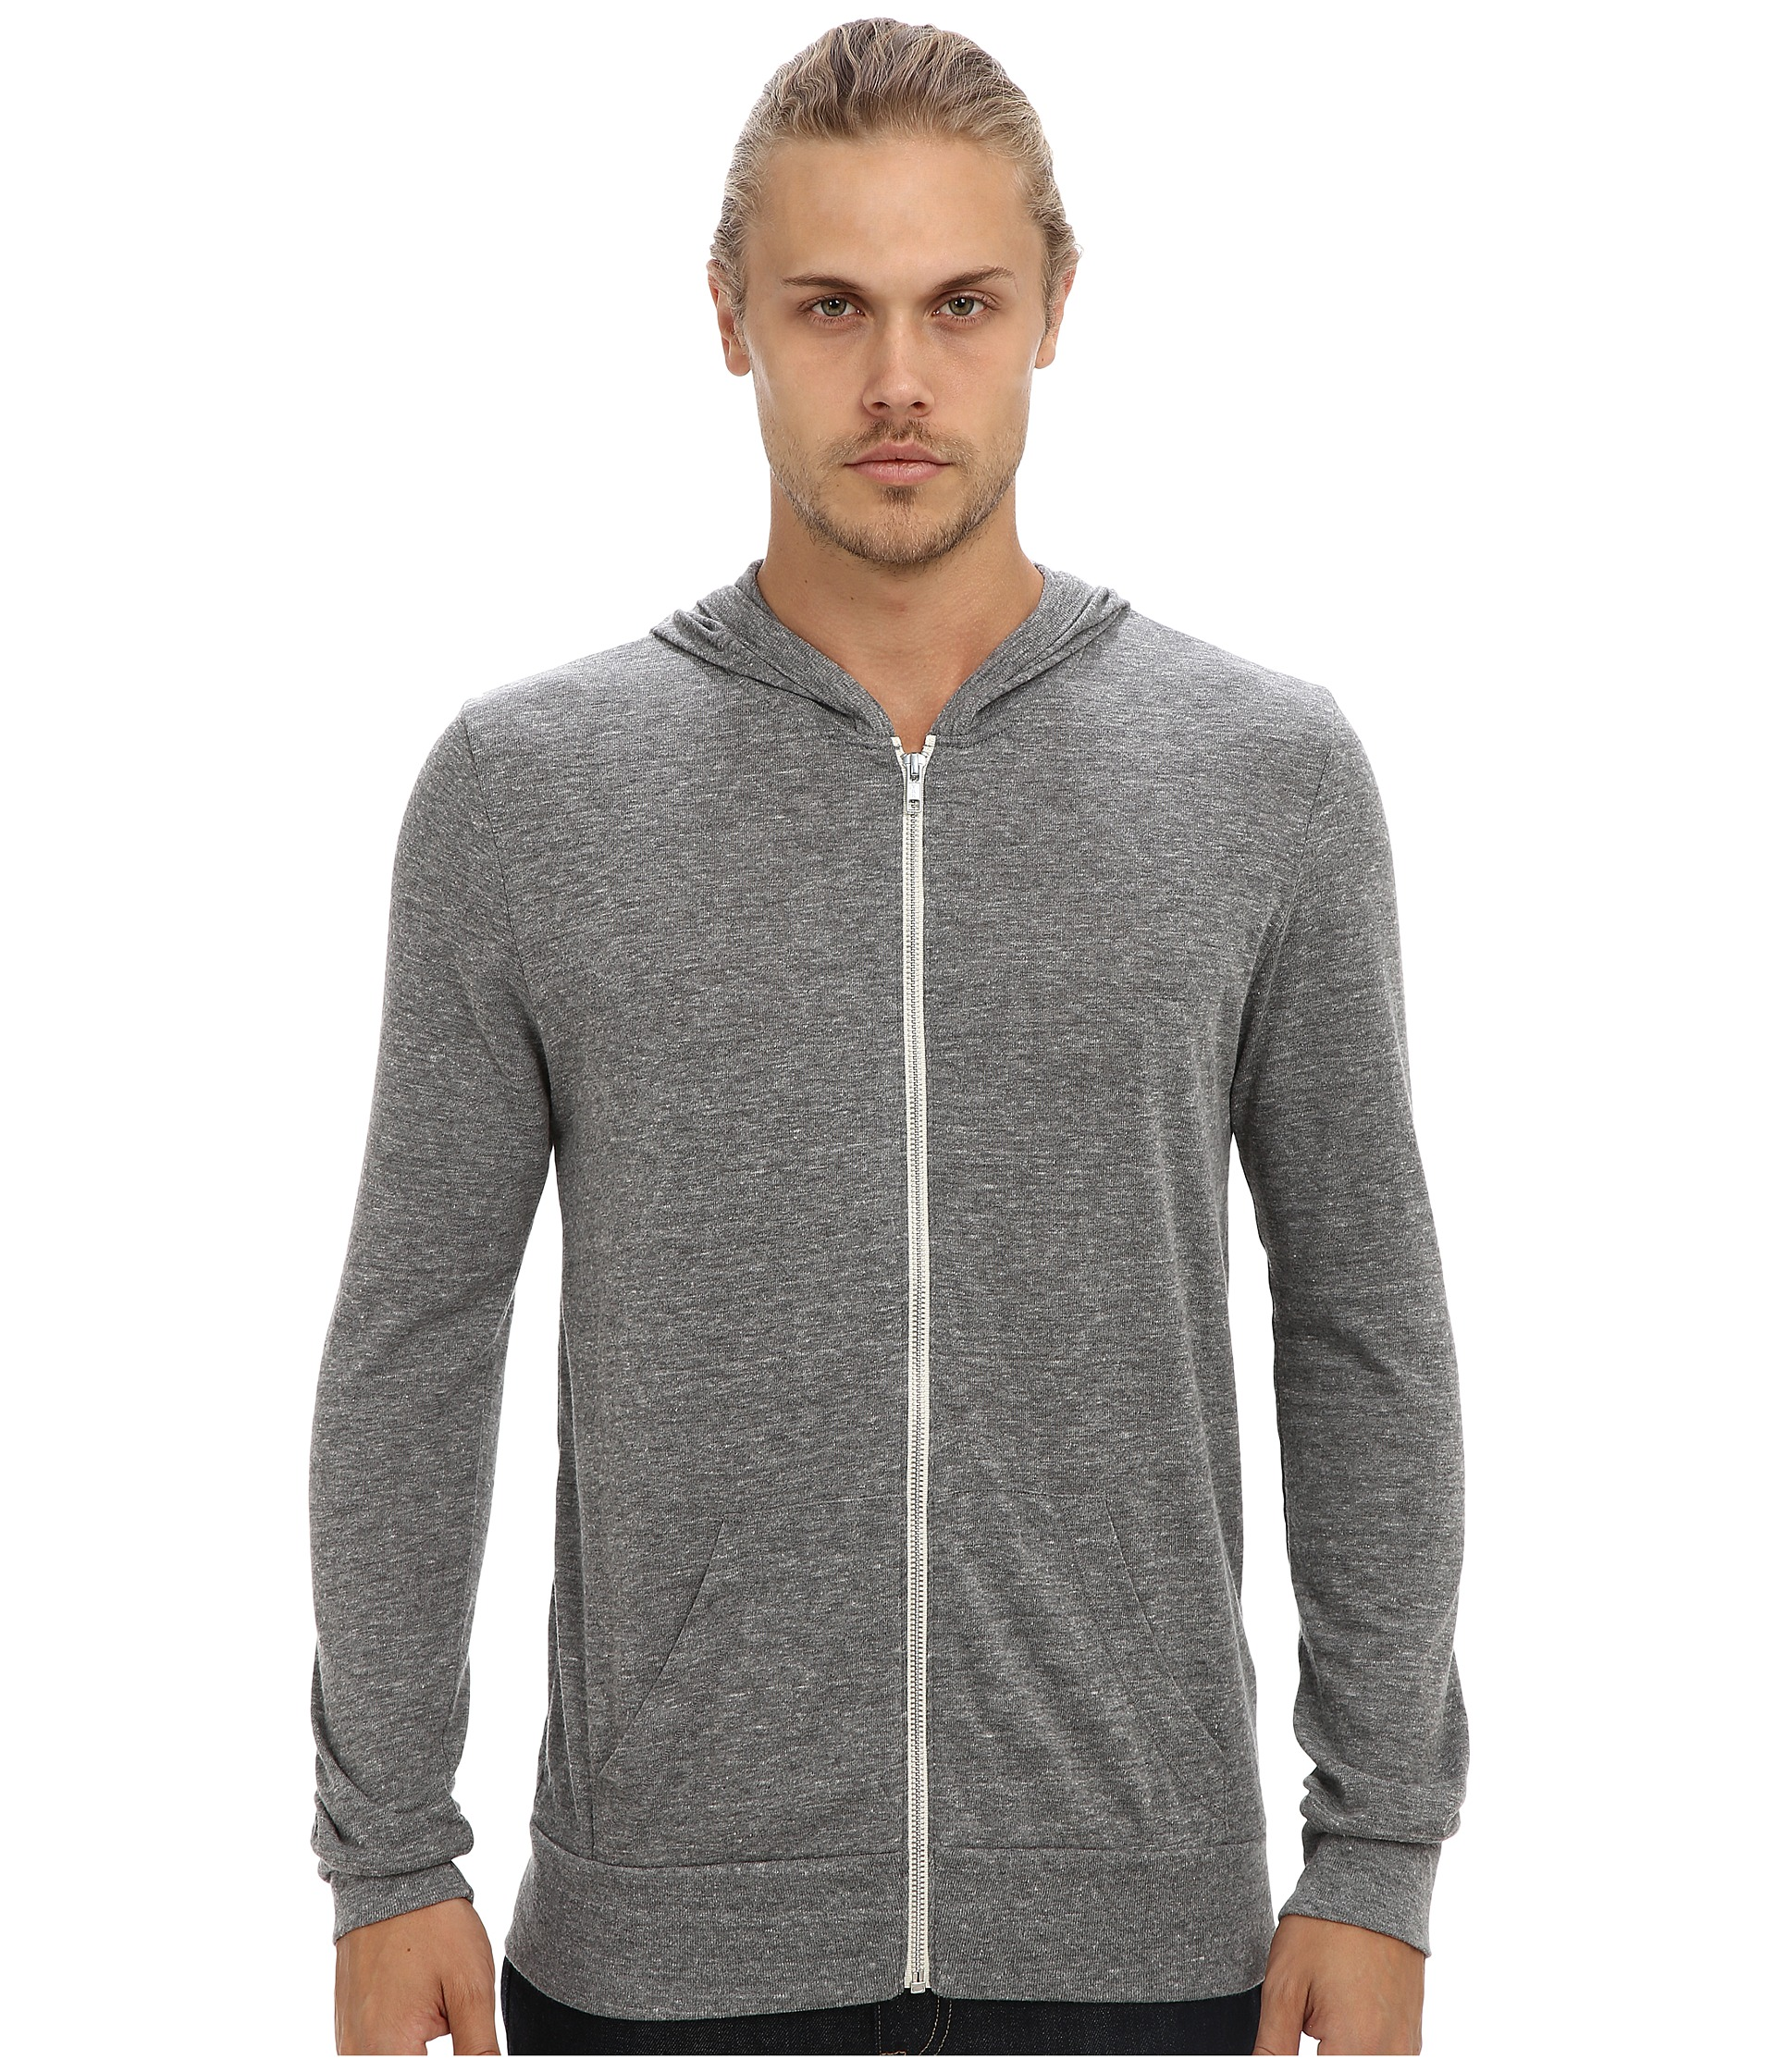 Alternative L/S Zip Hoodie - Zappos.com Free Shipping BOTH Ways